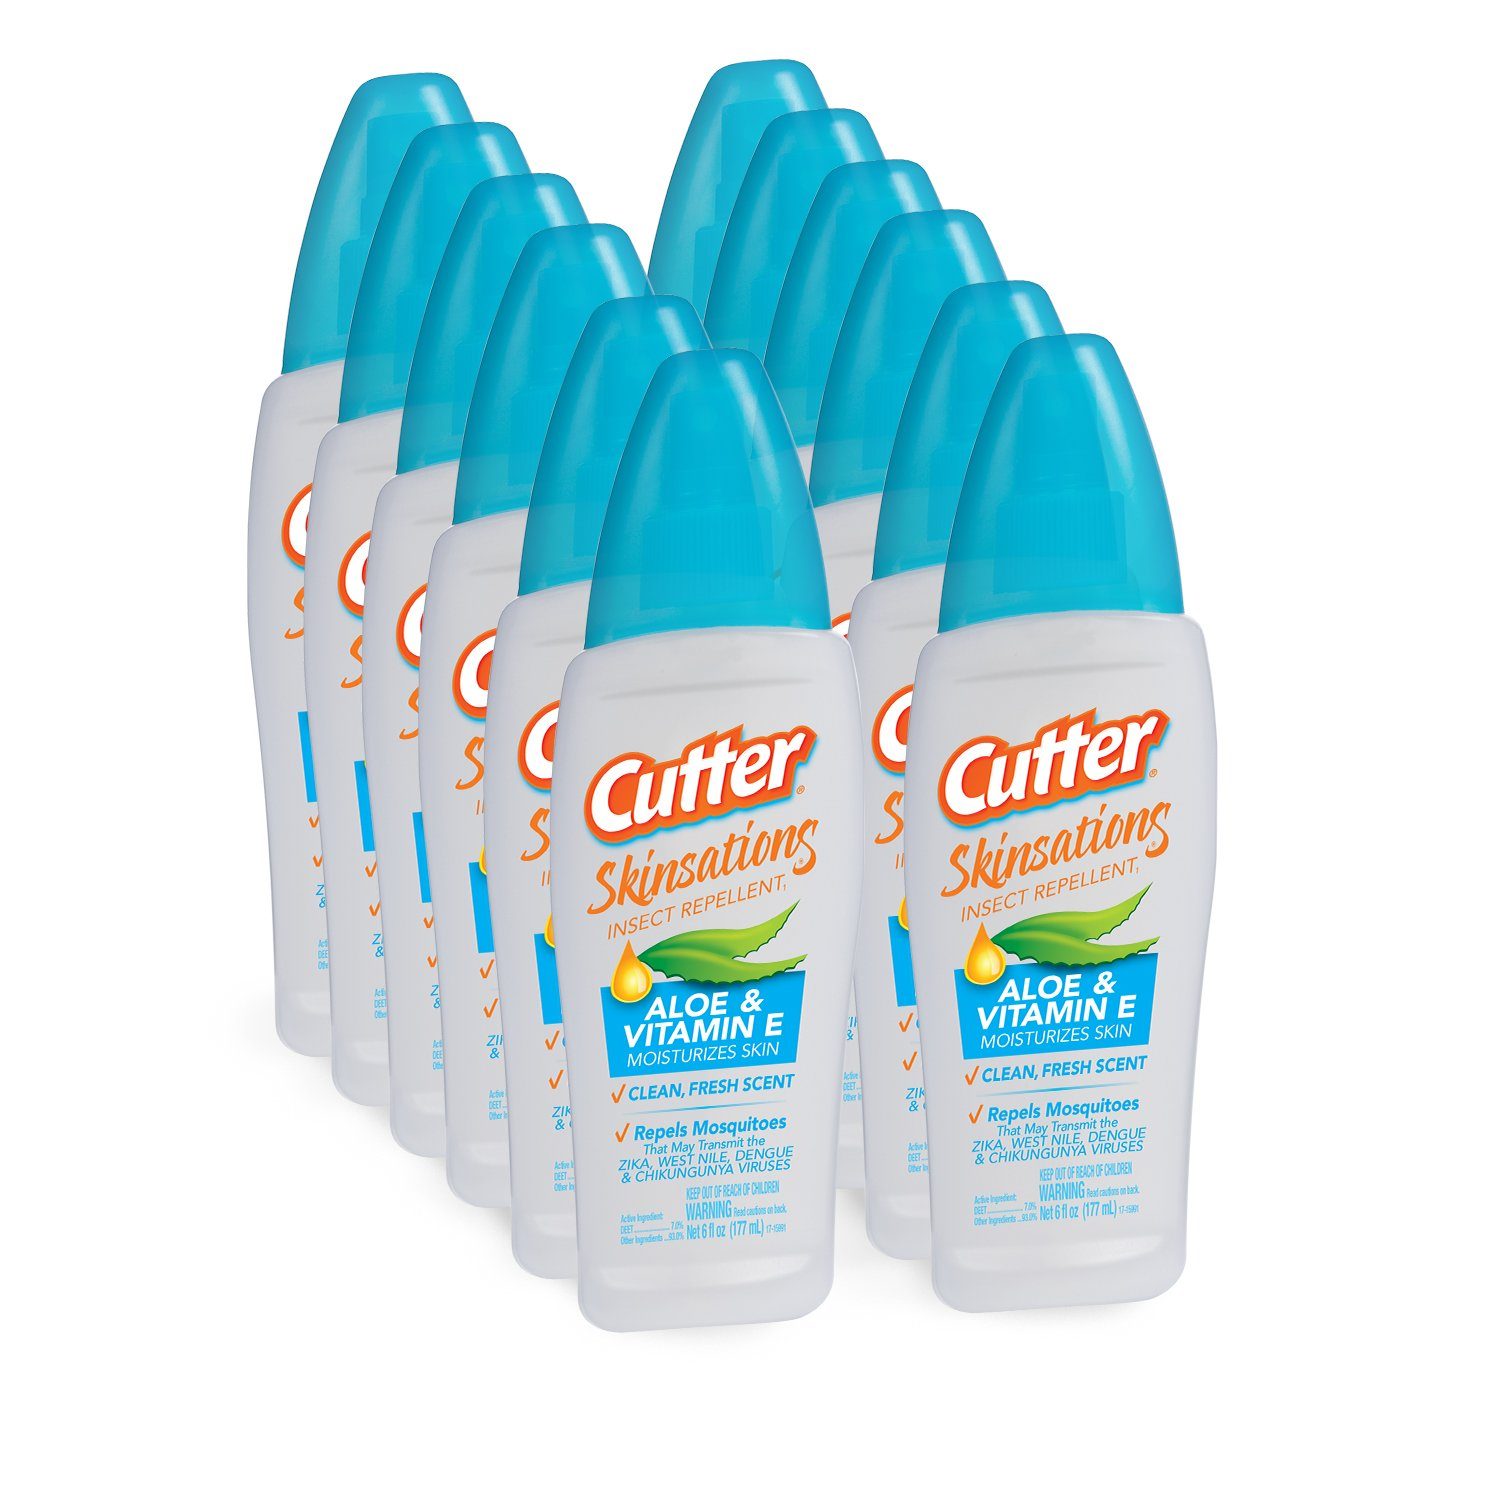 Cutter Skinsations Insect Repellent1 (Pump Spray) (HG-54010) (Pack of 12)